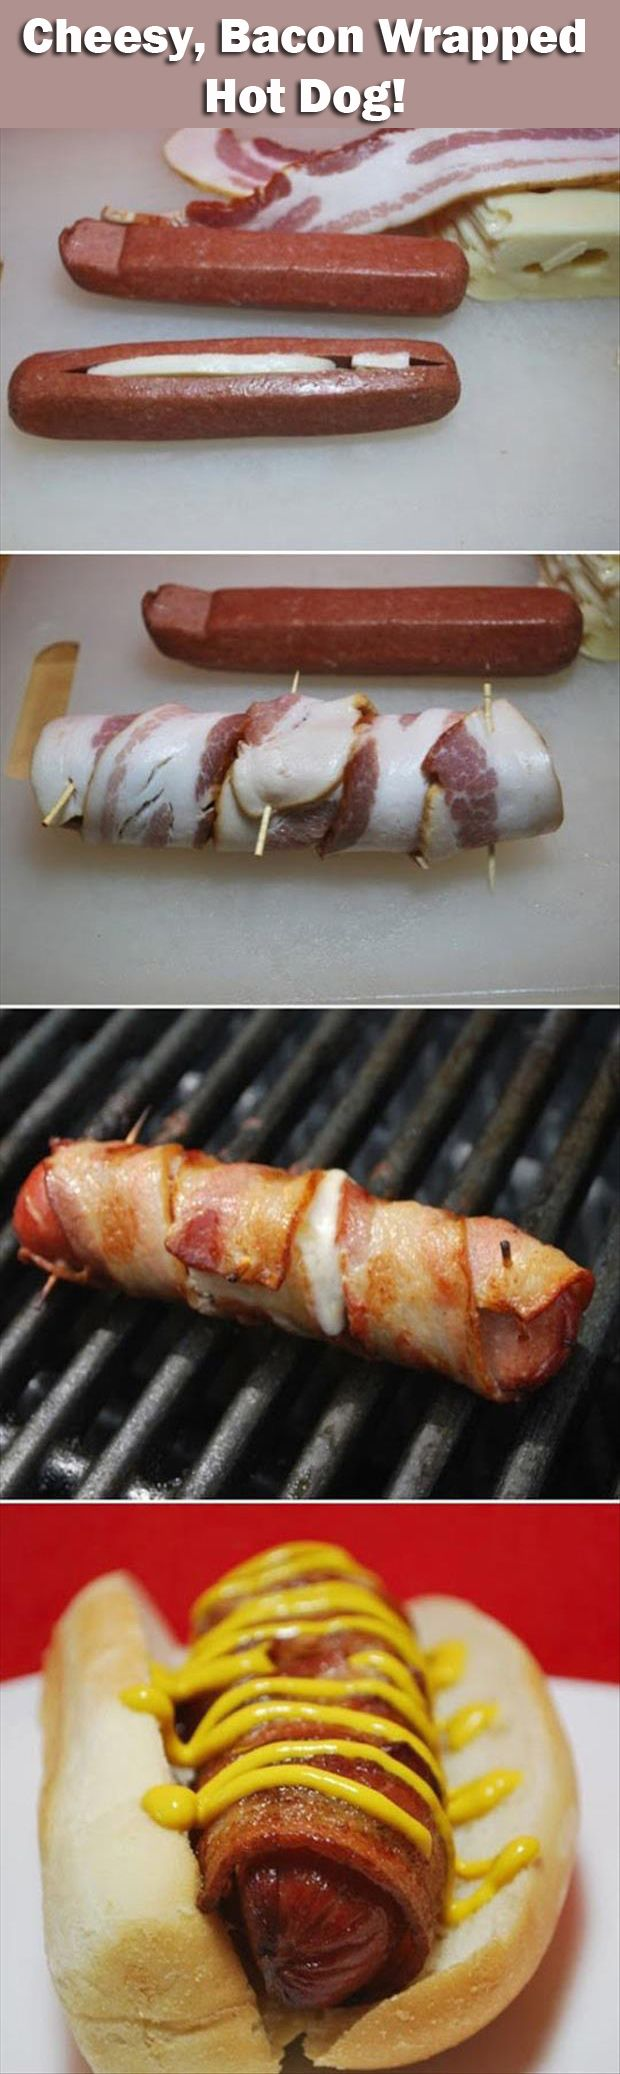 cheese bacon wrapped hotdog pre-make for camping